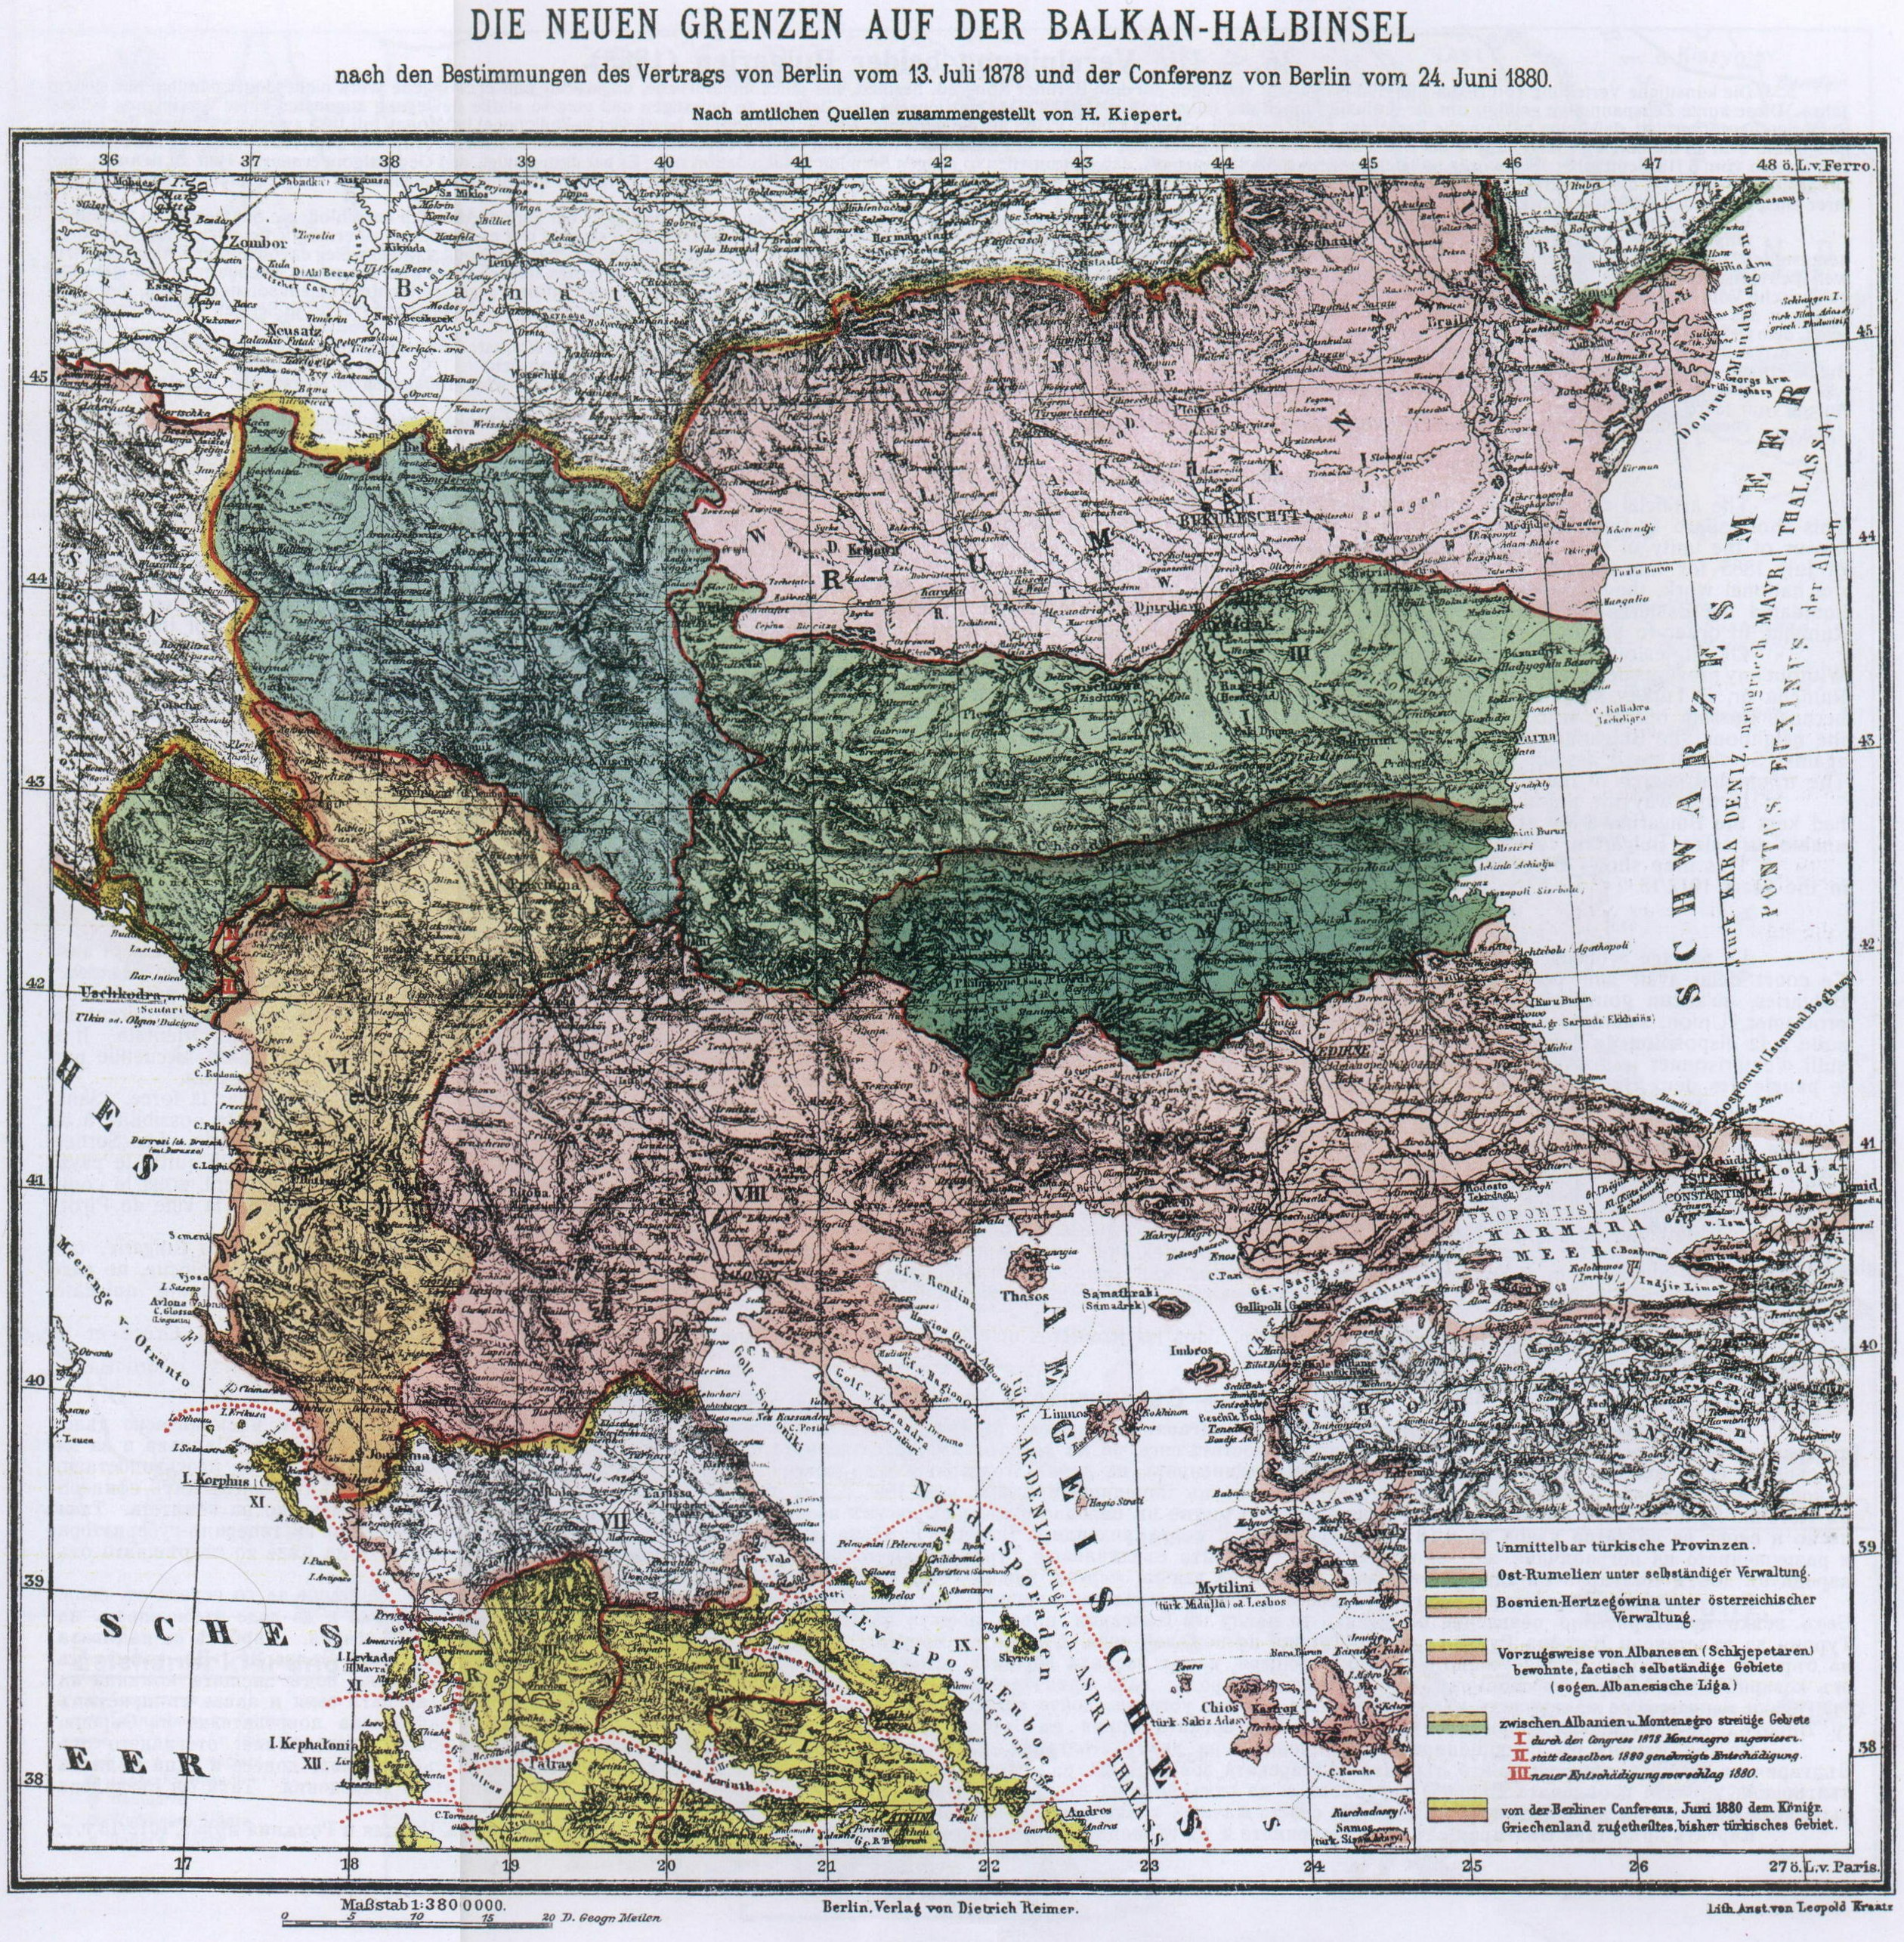 Historical Maps of the Balkans